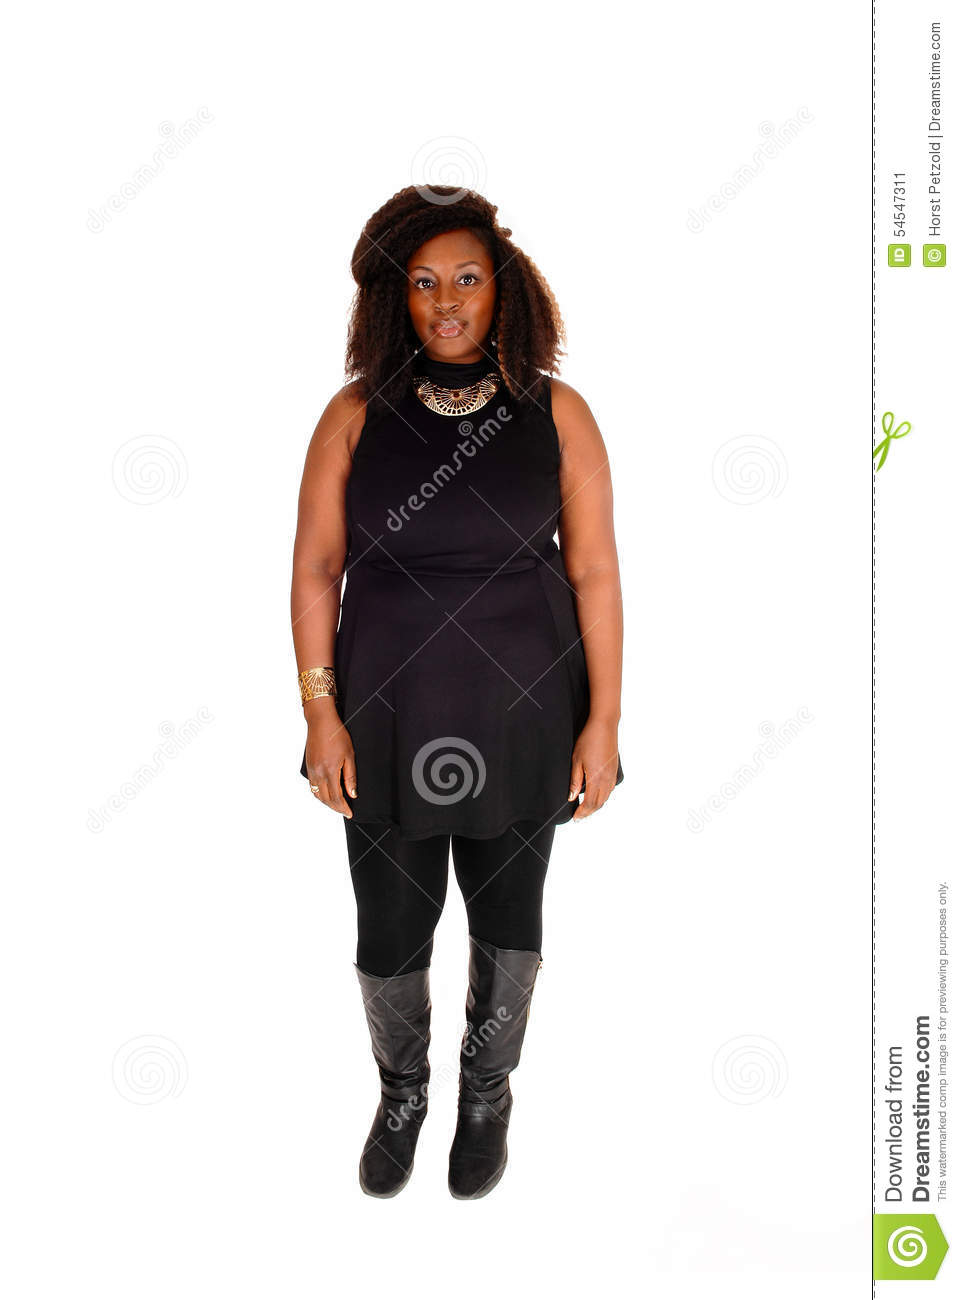 African Woman Standing In Boots. Stock Photo - Image: 54547311